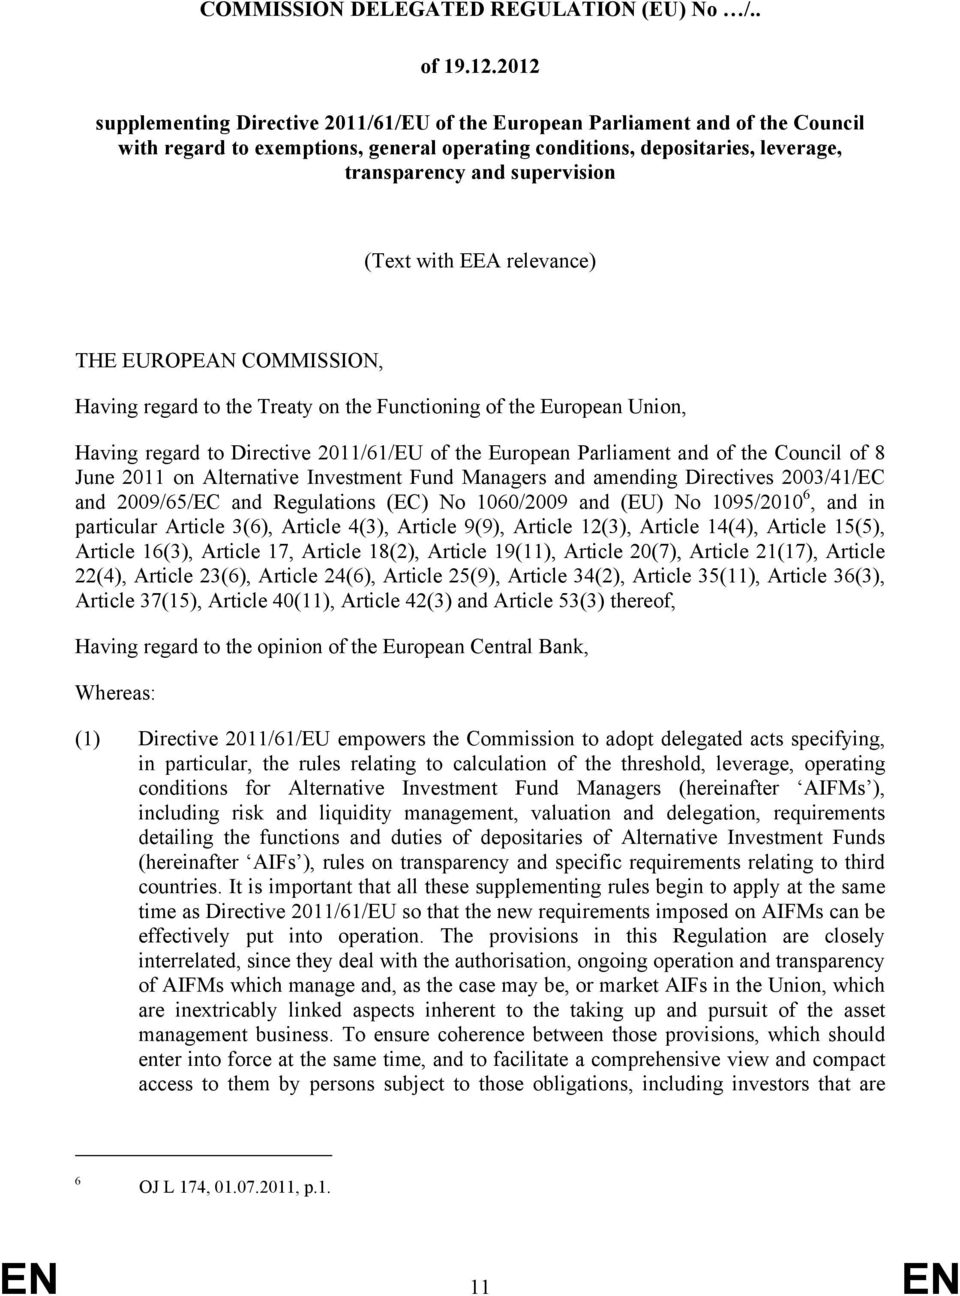 (Text with EEA relevance) THE EUROPEAN COMMISSION, Having regard to the Treaty on the Functioning of the European Union, Having regard to Directive 2011/61/EU of the European Parliament and of the